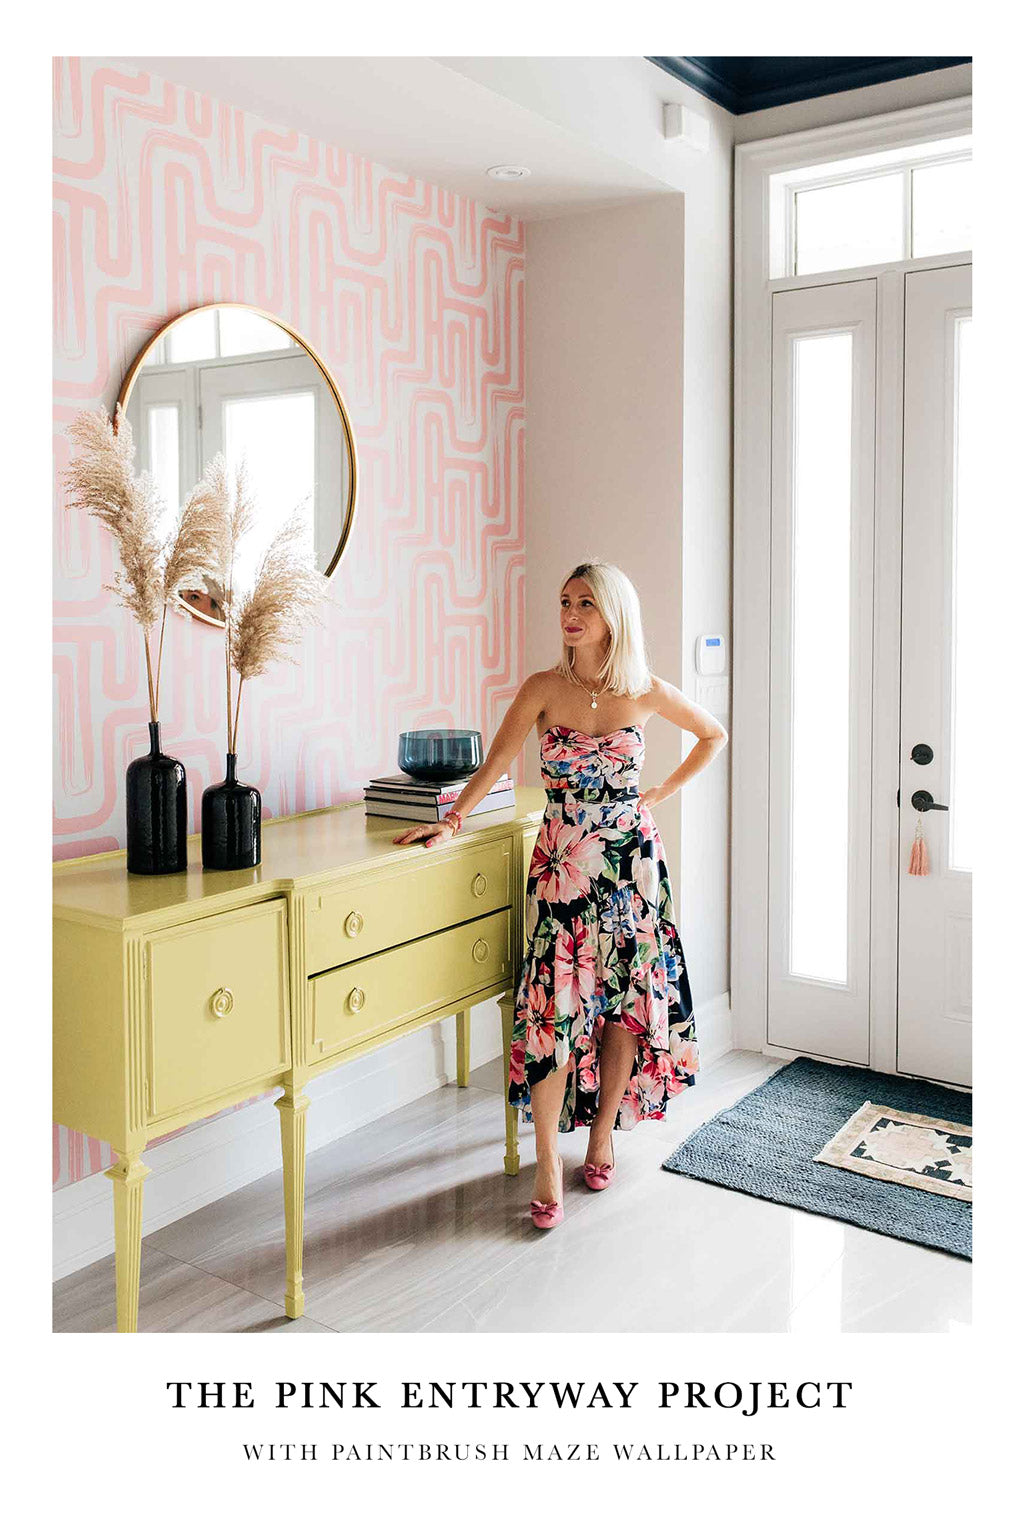 Pink entryway design in eclectic style with modern removable wallpaper